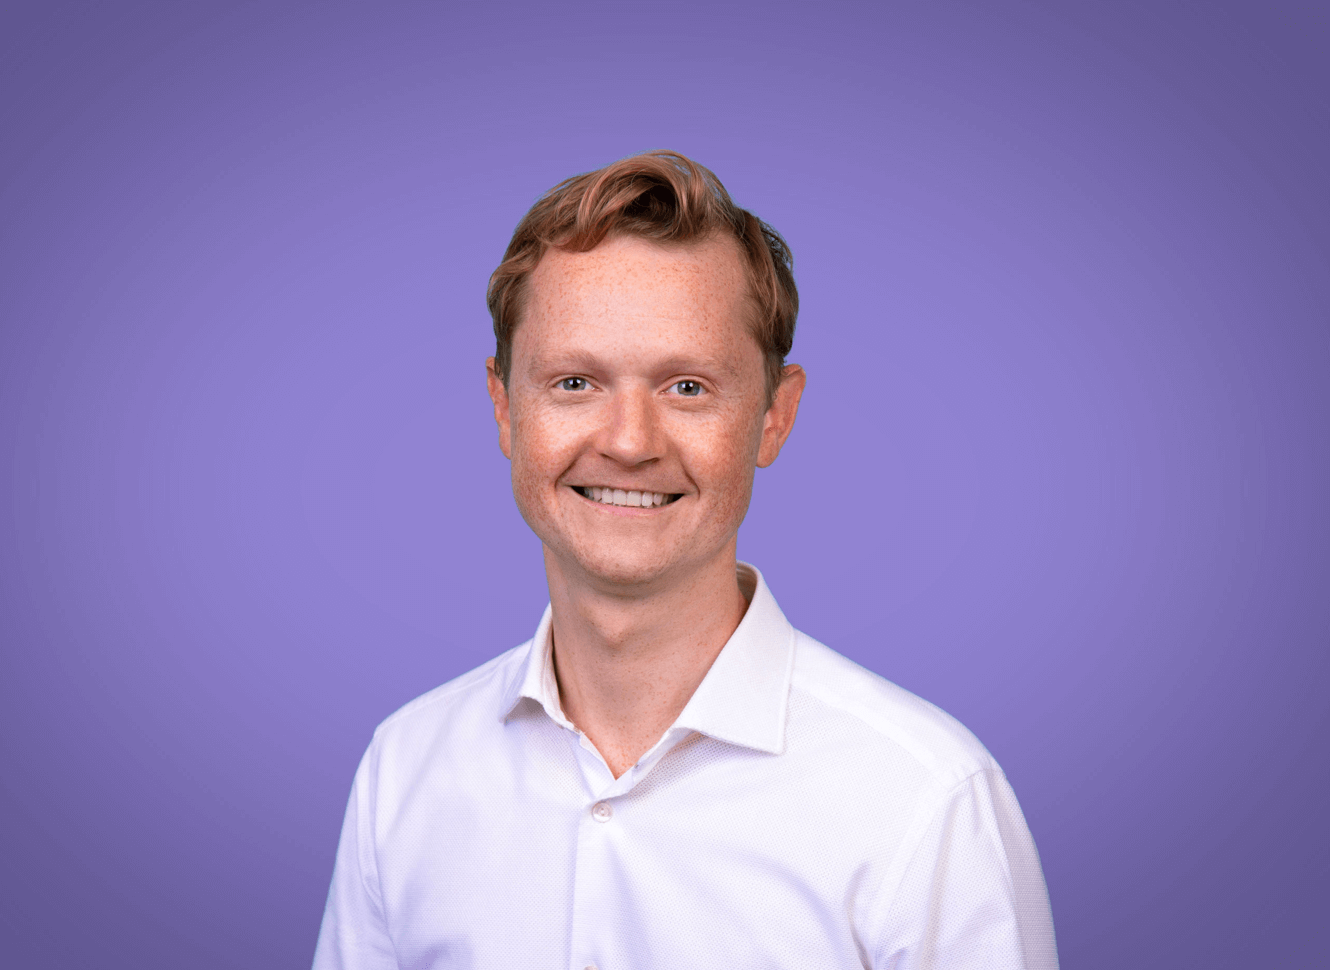 Corporate photo of Peter Mühlmann, Trustpilot's CEO & Founder